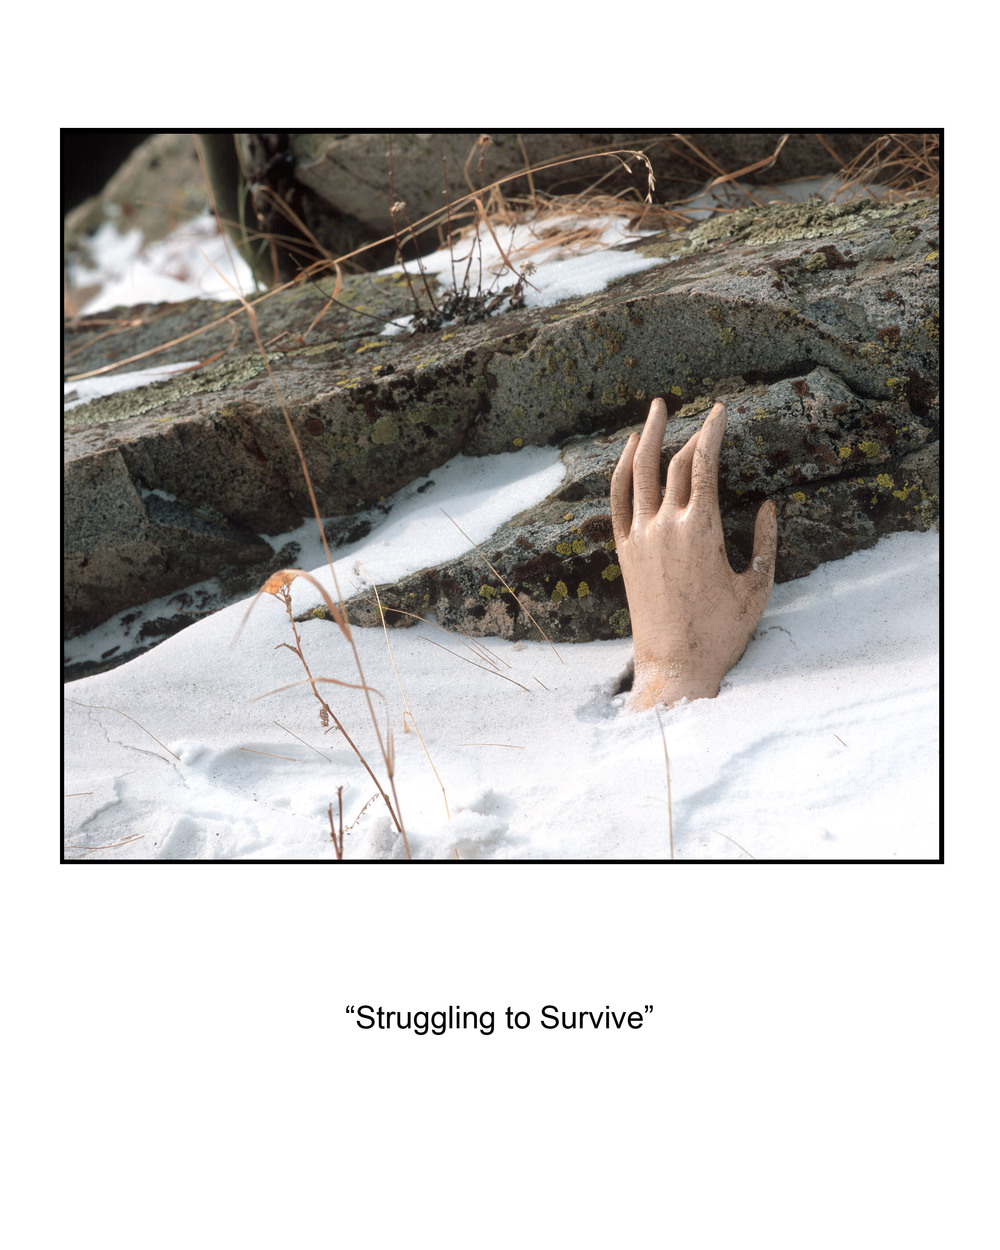 13 The Struggle to Survive.jpg